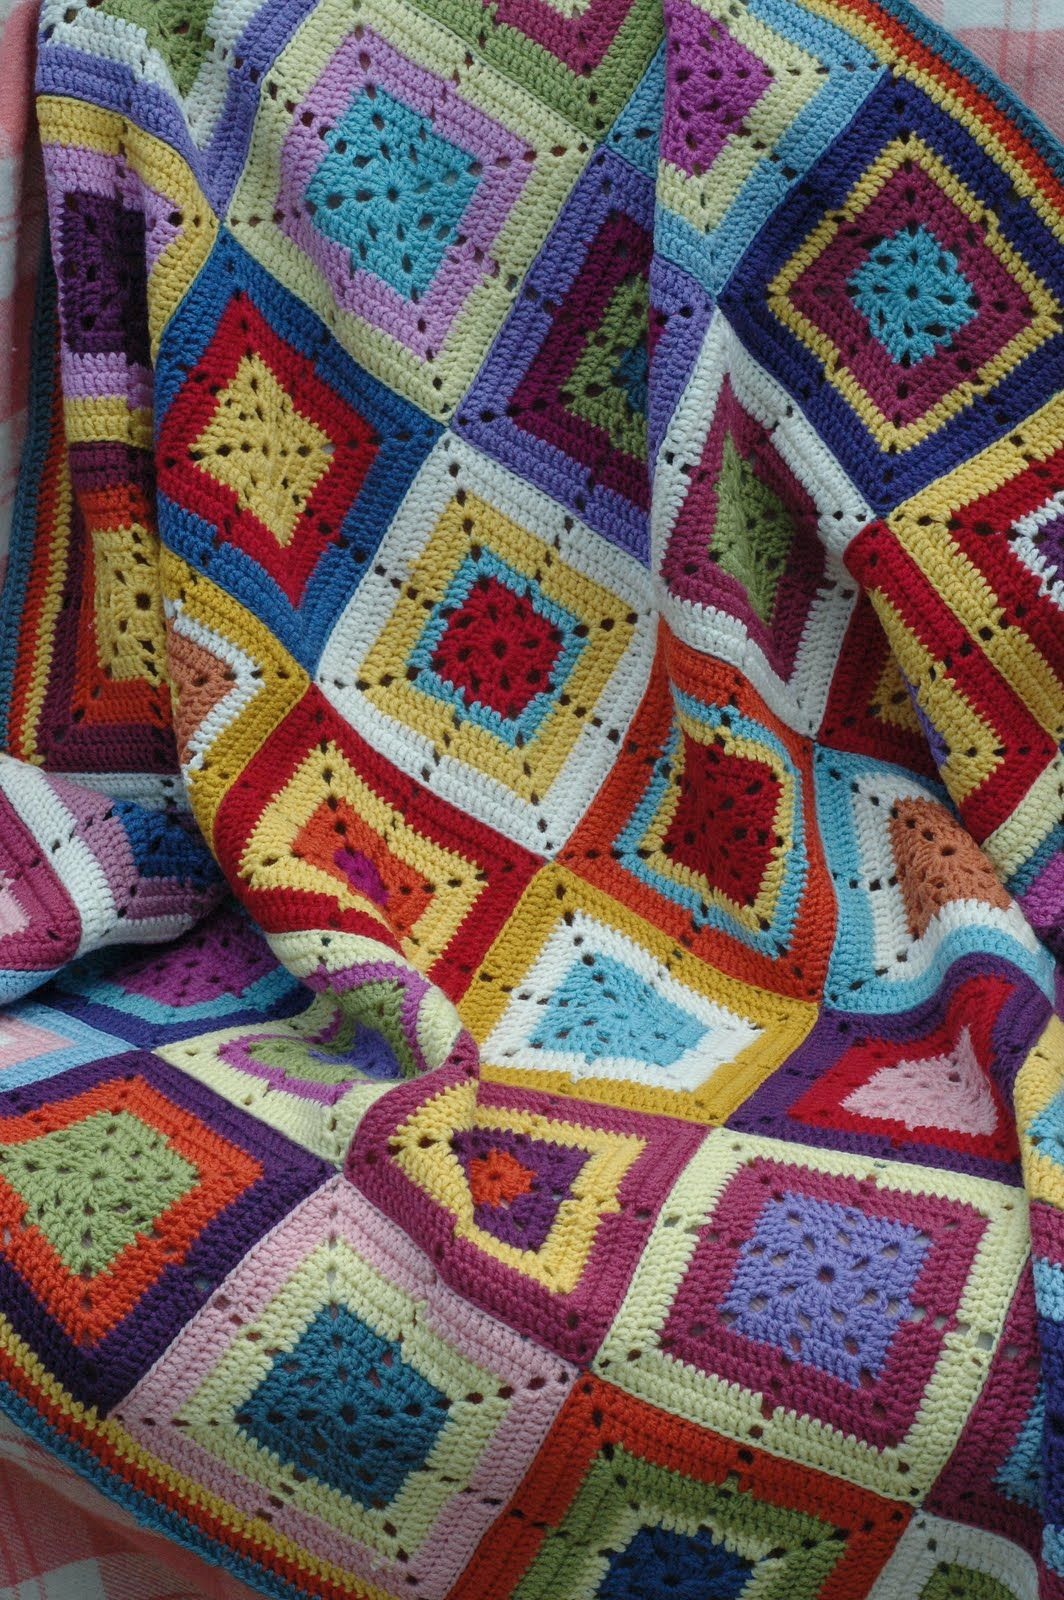 Serendipity Patch: Crochet Blankets | labores | Pinterest | Frazada ...